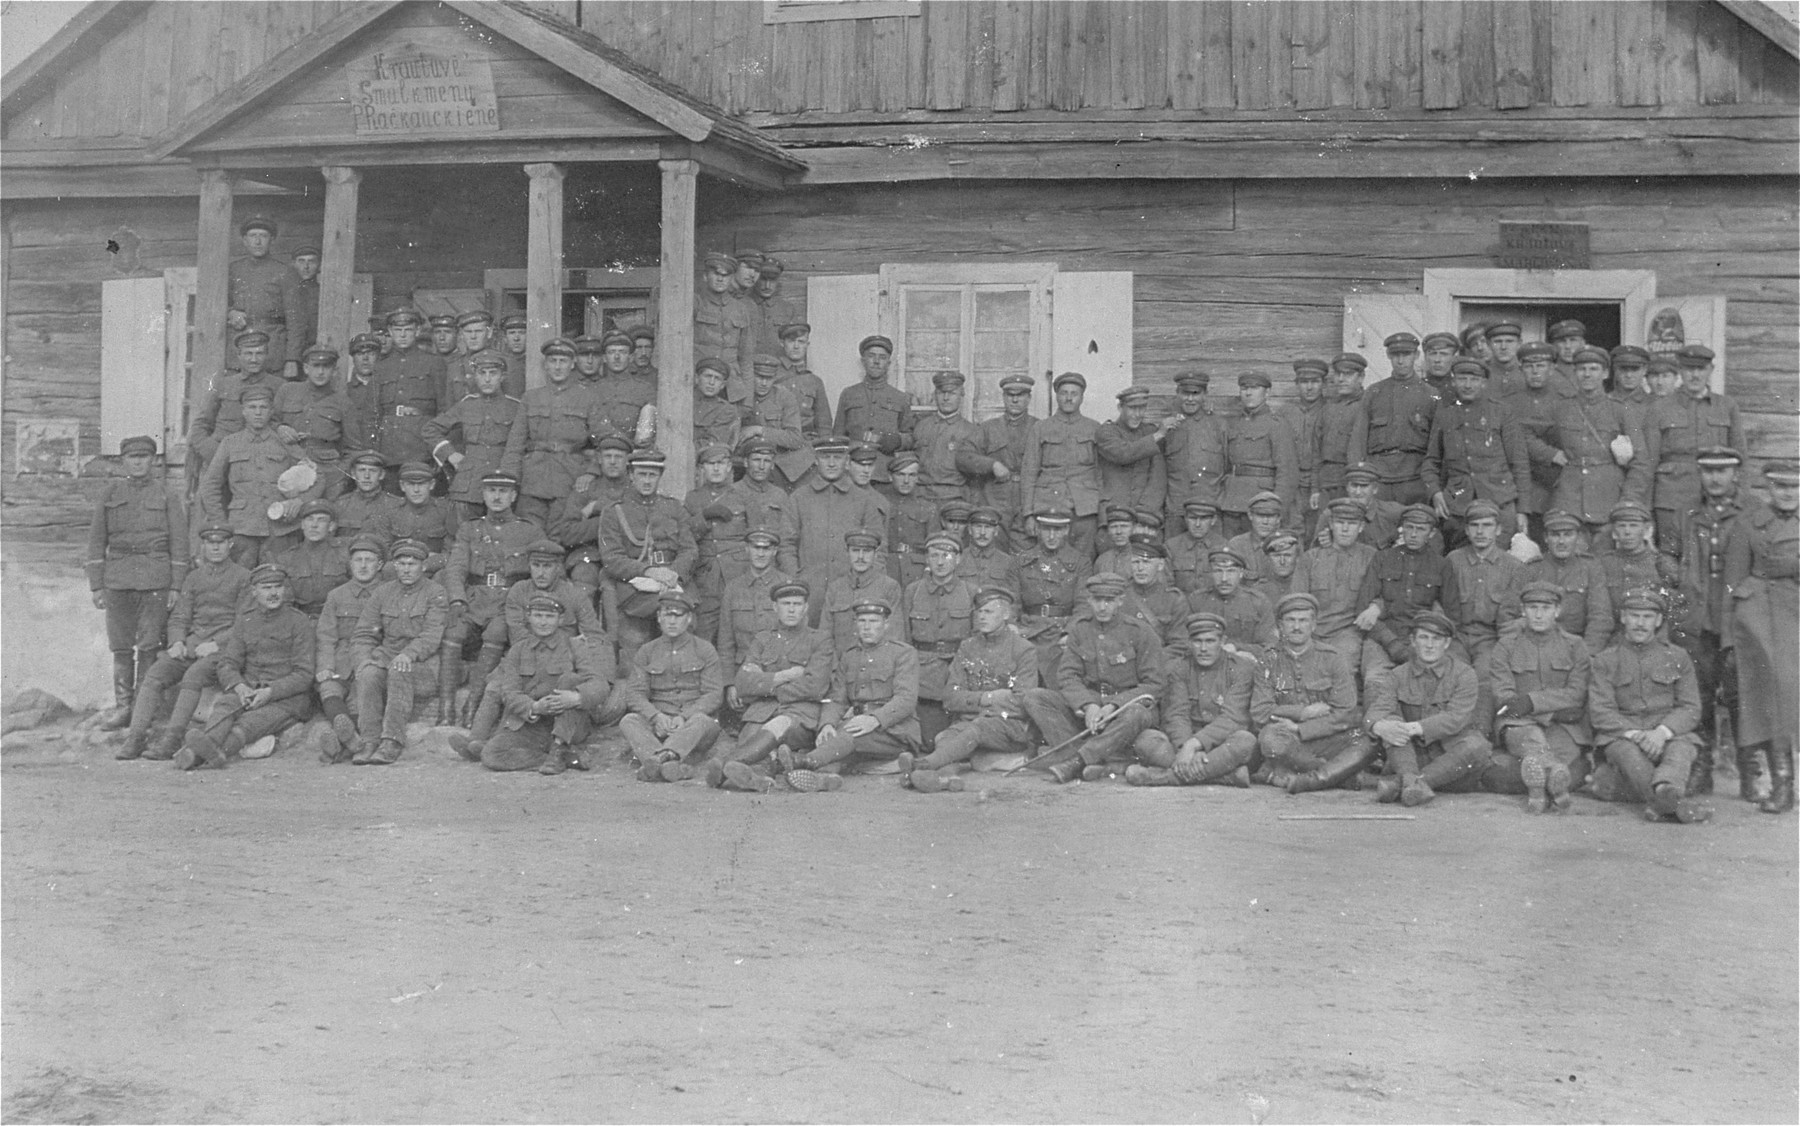 Group portrait of a Lithuanian military unit in front of a house owned by the Gar family in Kron.